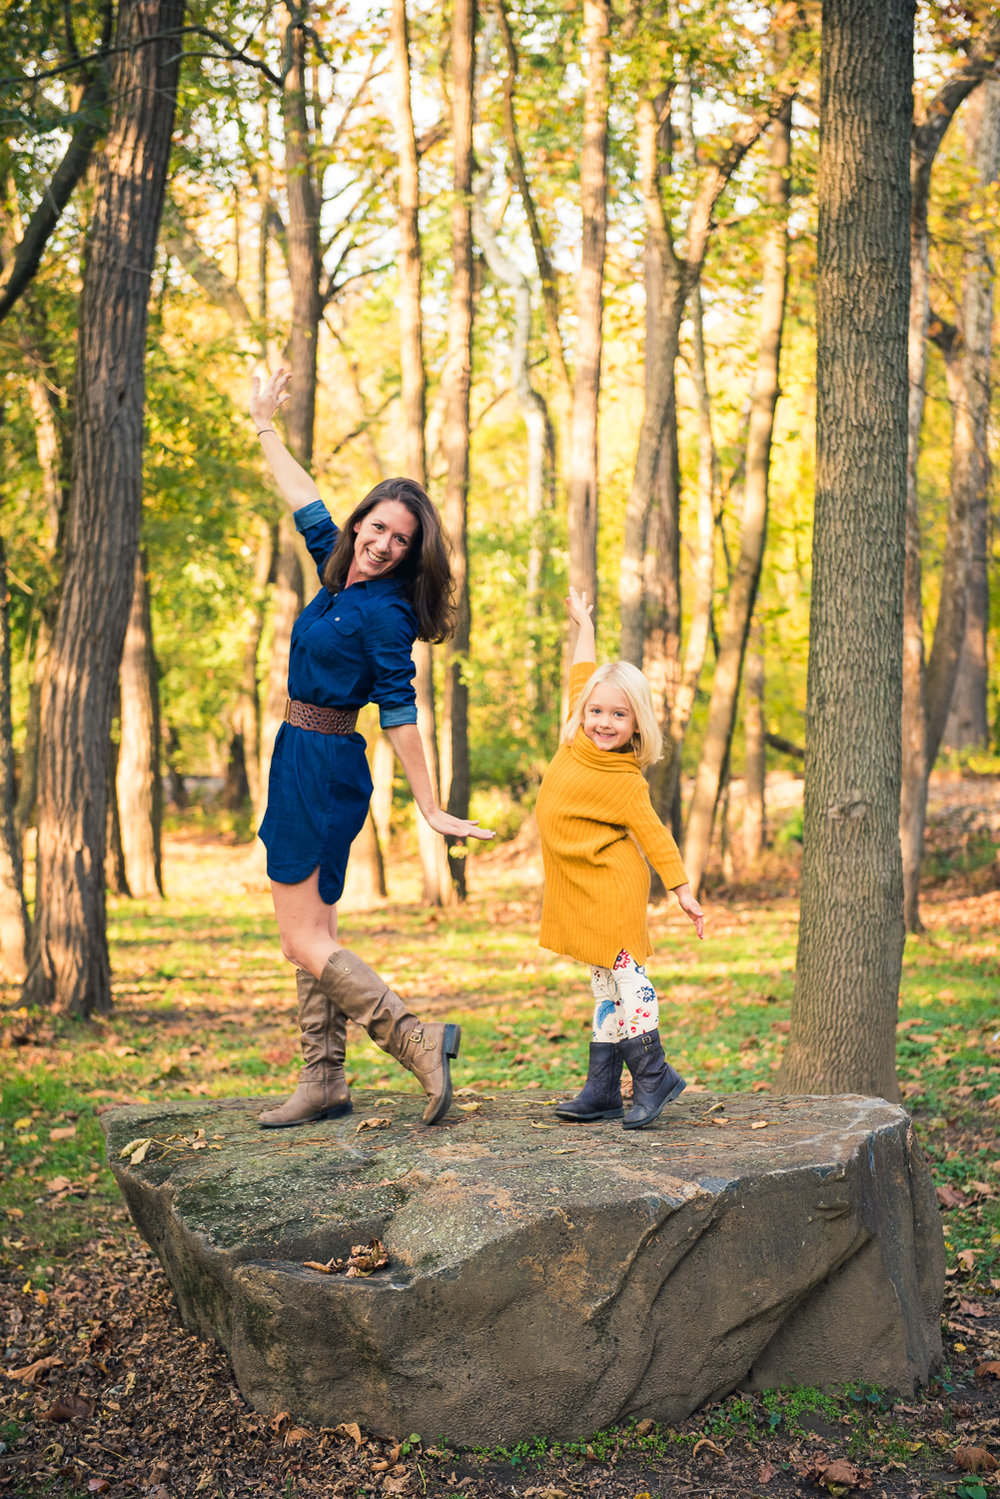 20161102 - Erika and Kayla LR-2.jpg